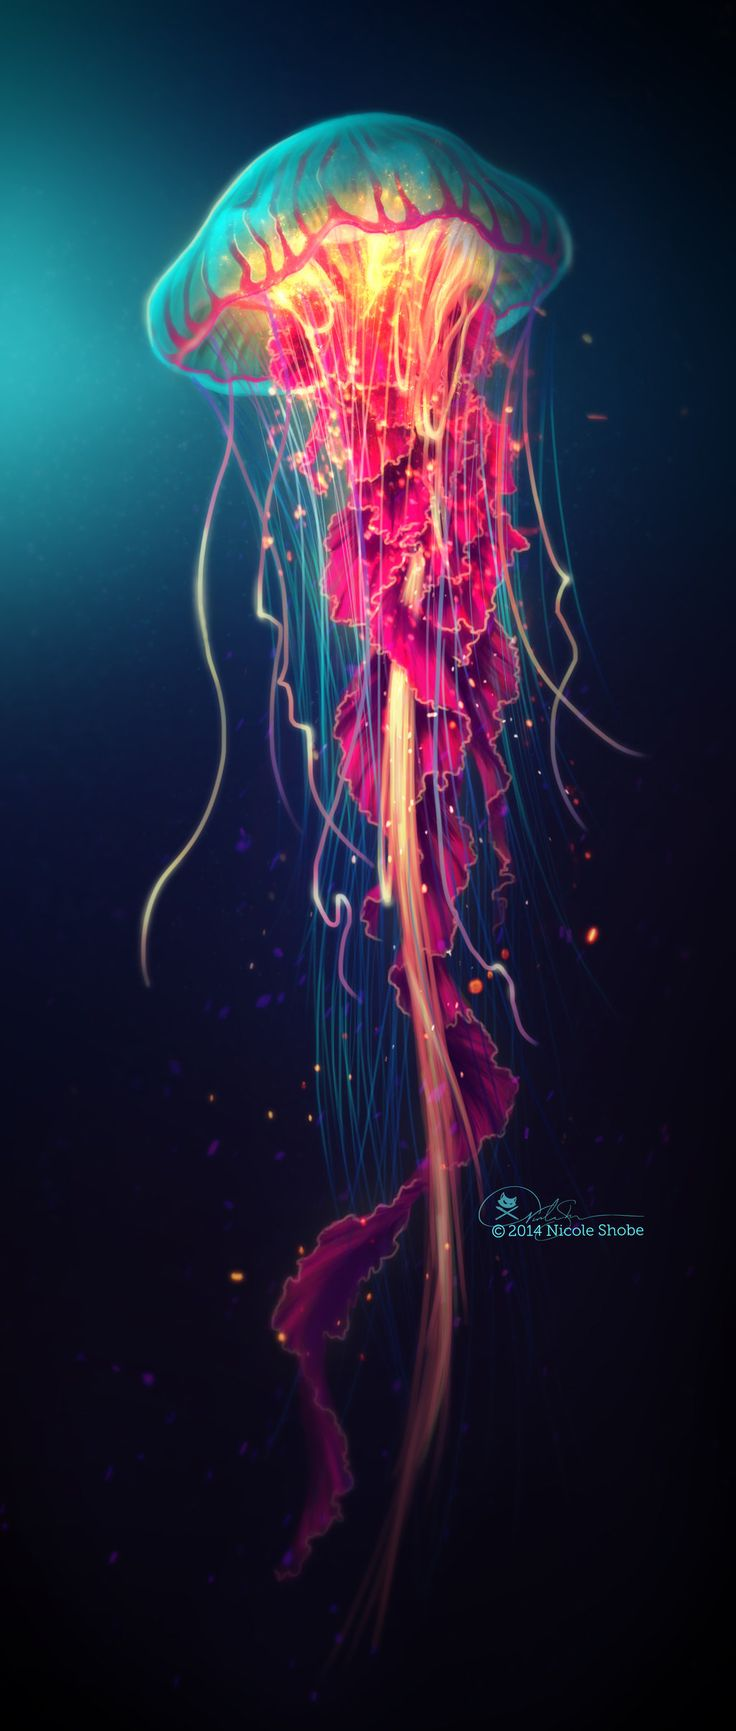 jellyfish_by_shobey1kanoby-d7vm451.jpg (1024×2409)